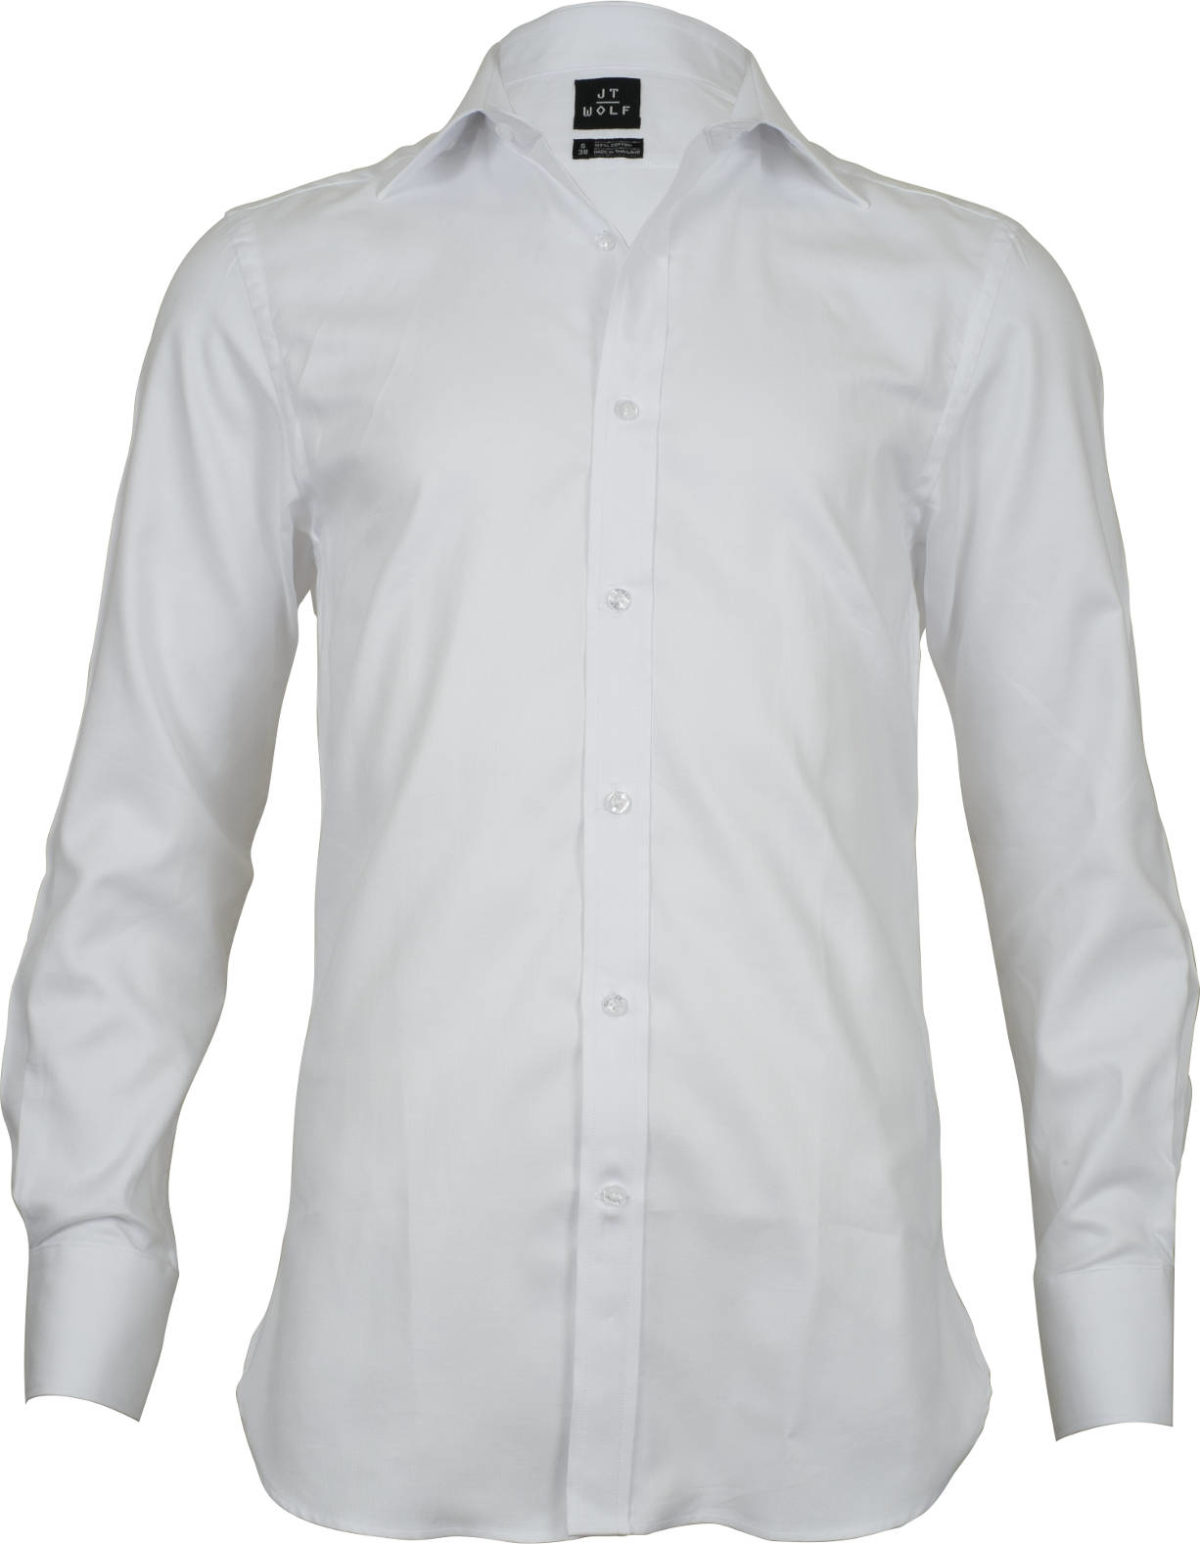 classic fit solid white business shirts front